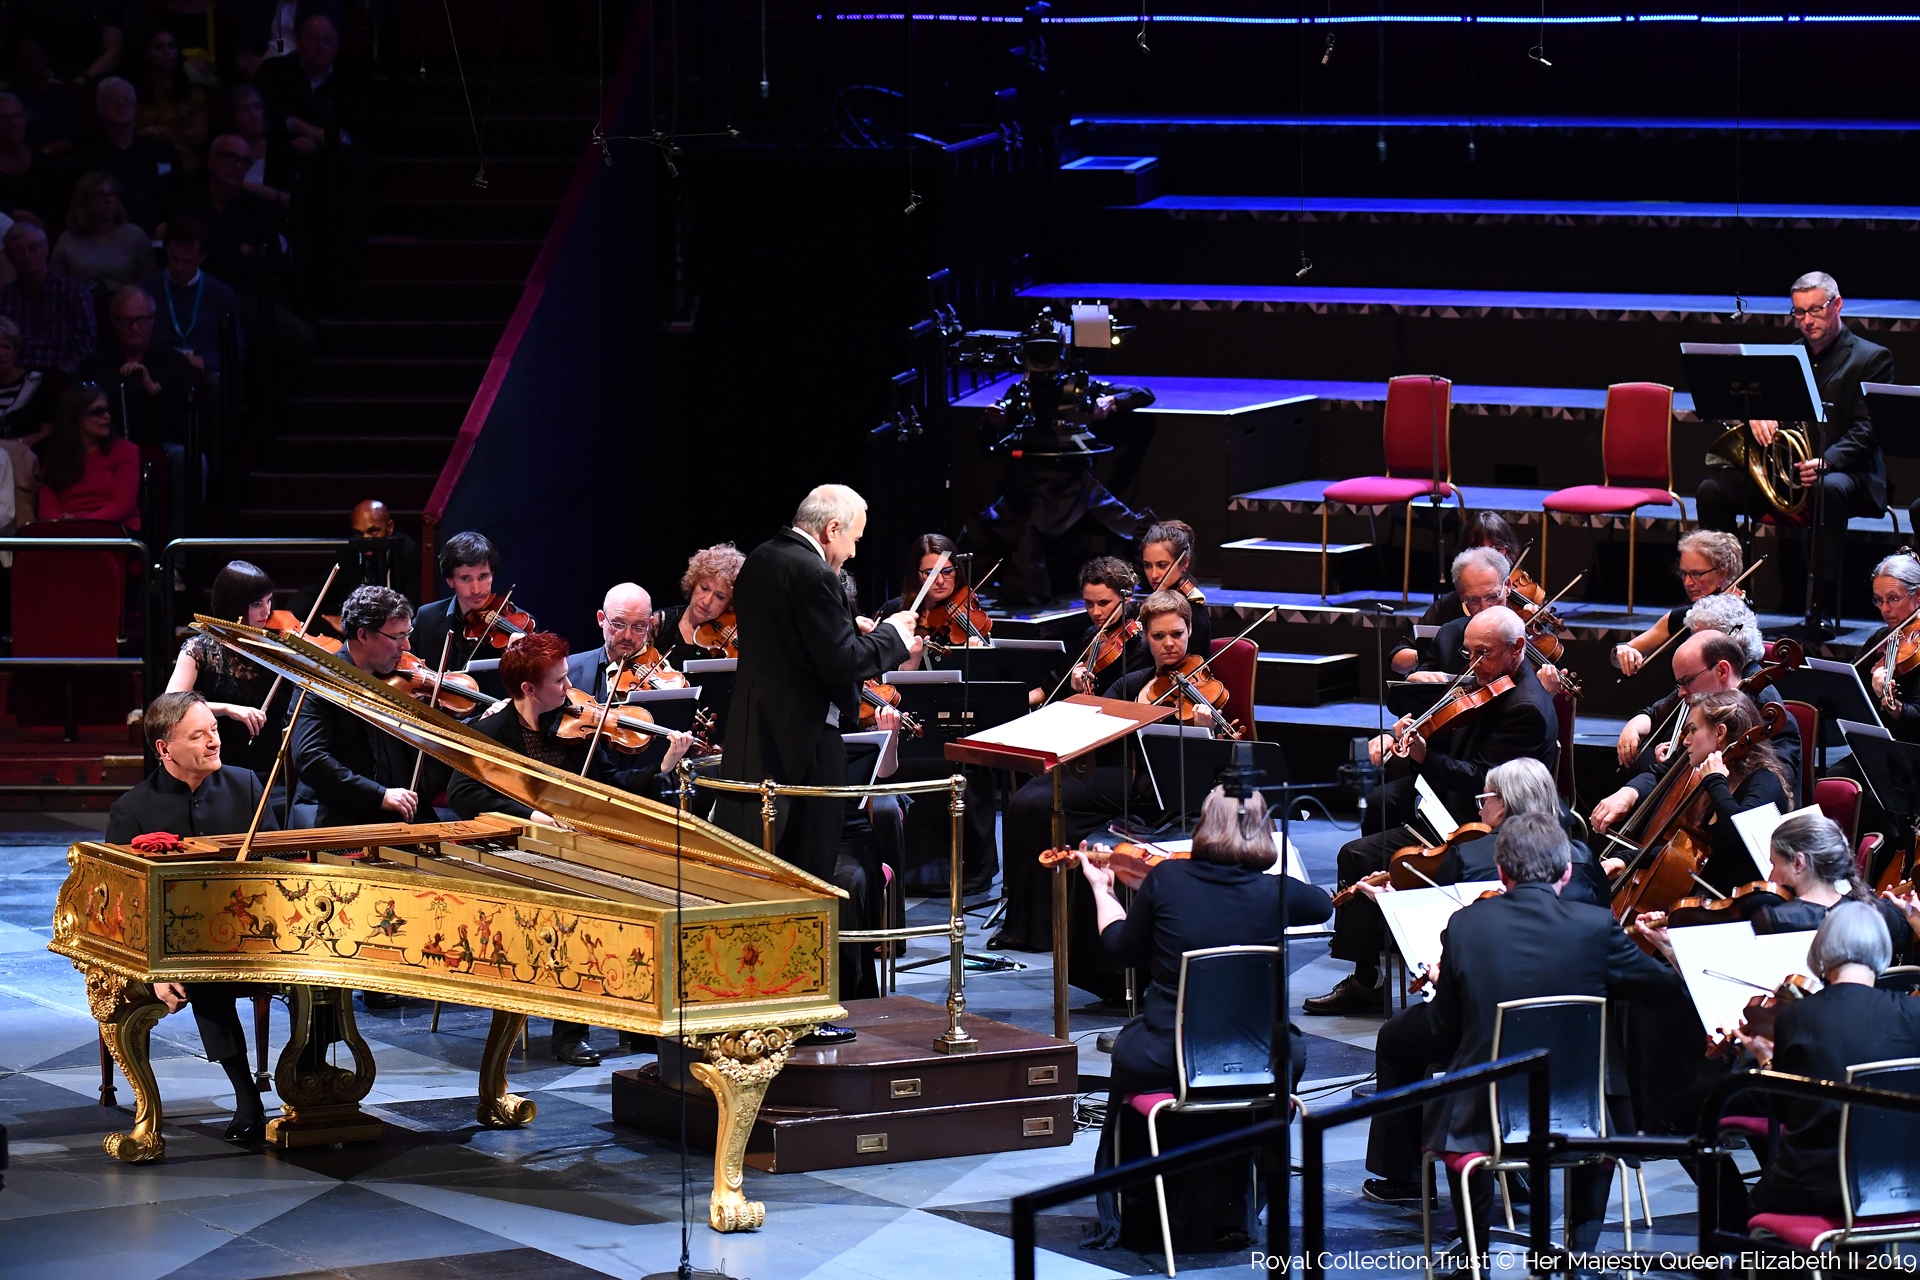 BBC Proms dedicate performance to Queen Victoria's 200th anniversary